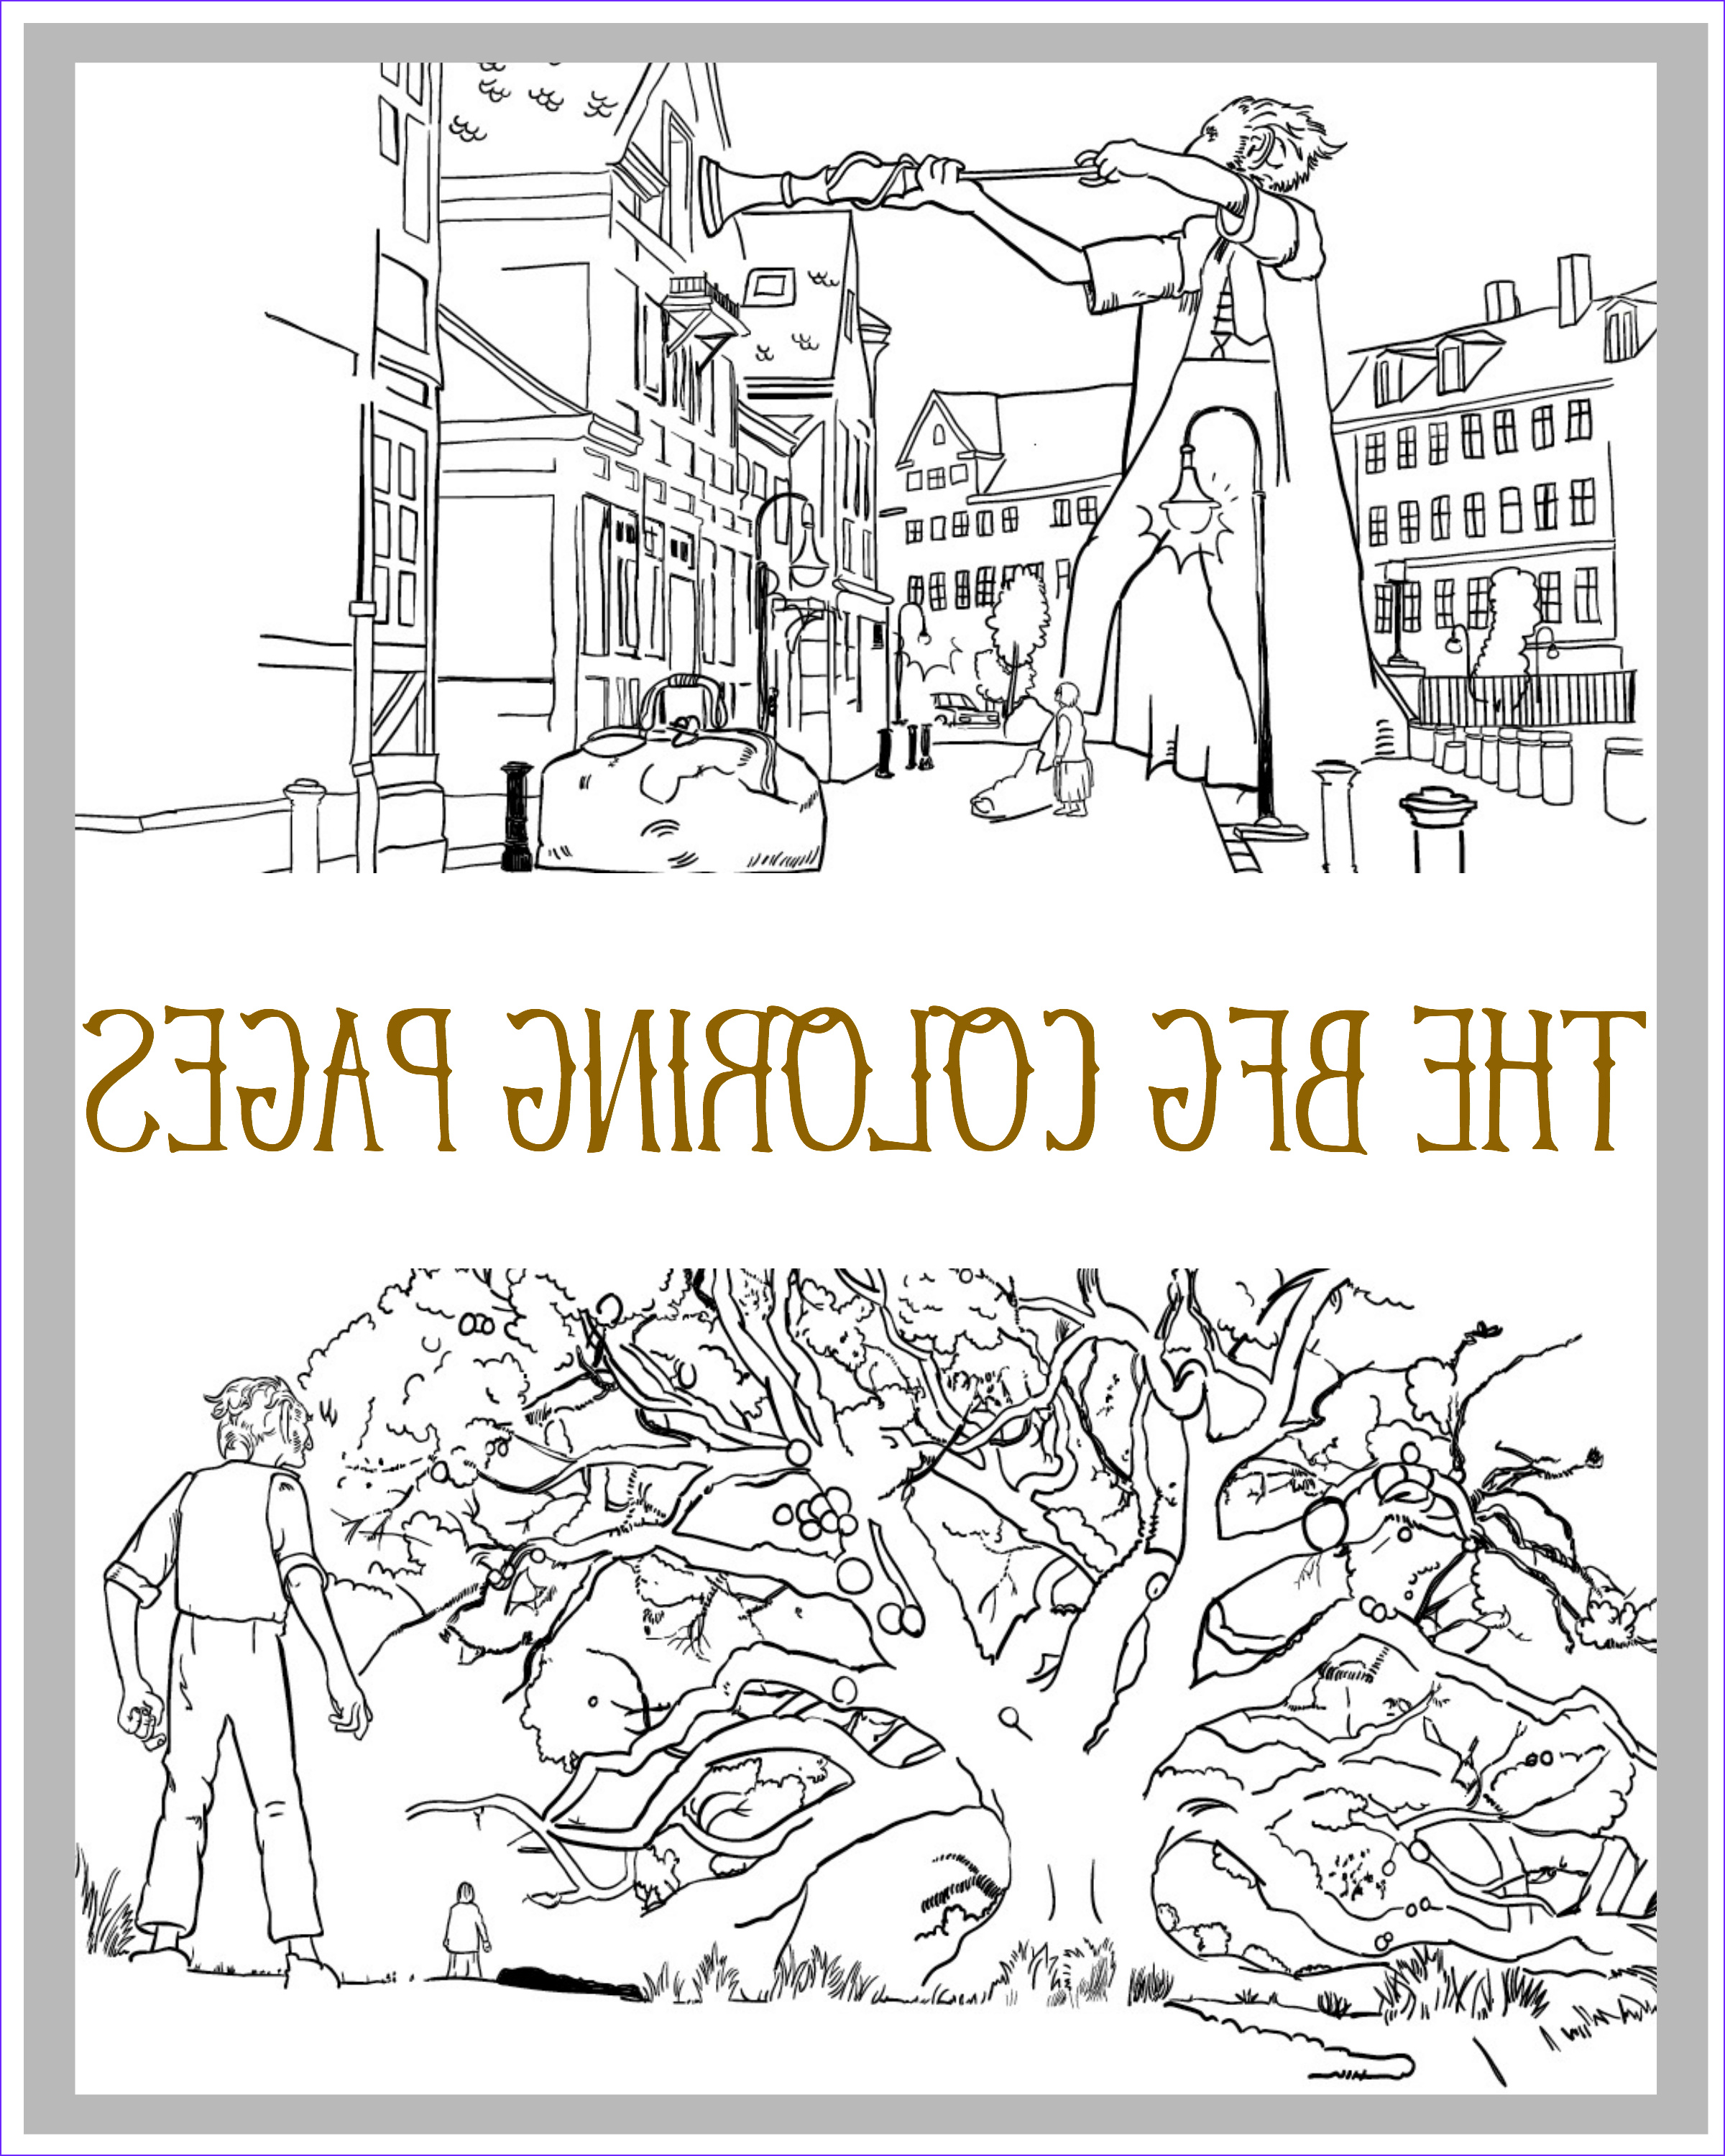 Bfg Coloring Pages Elegant Stock the Bfg Coloring Pages Projects to Try